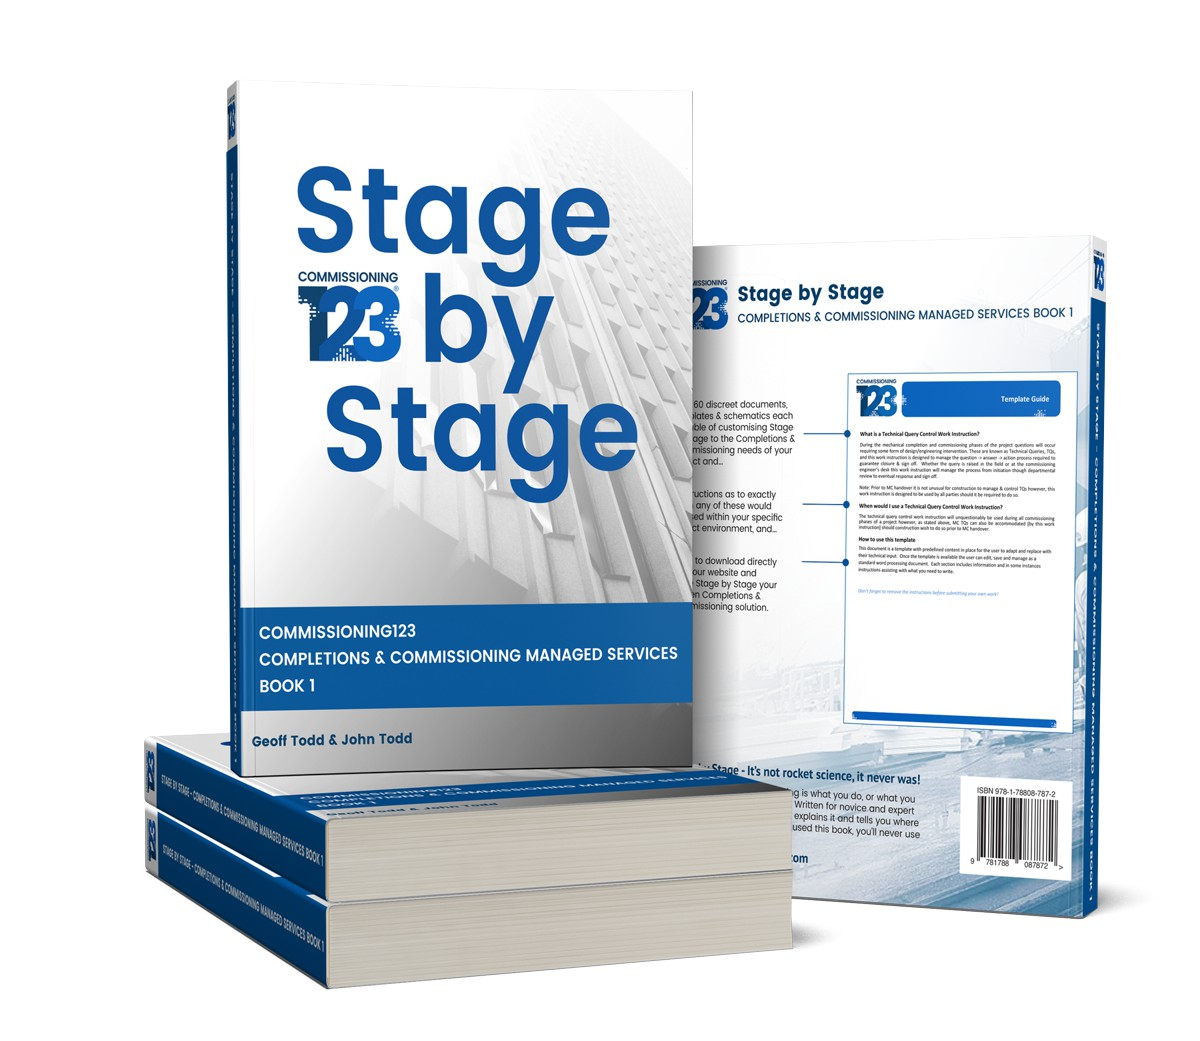 Stage by Stage - New book and website a paradigm shift in commissioning and completions